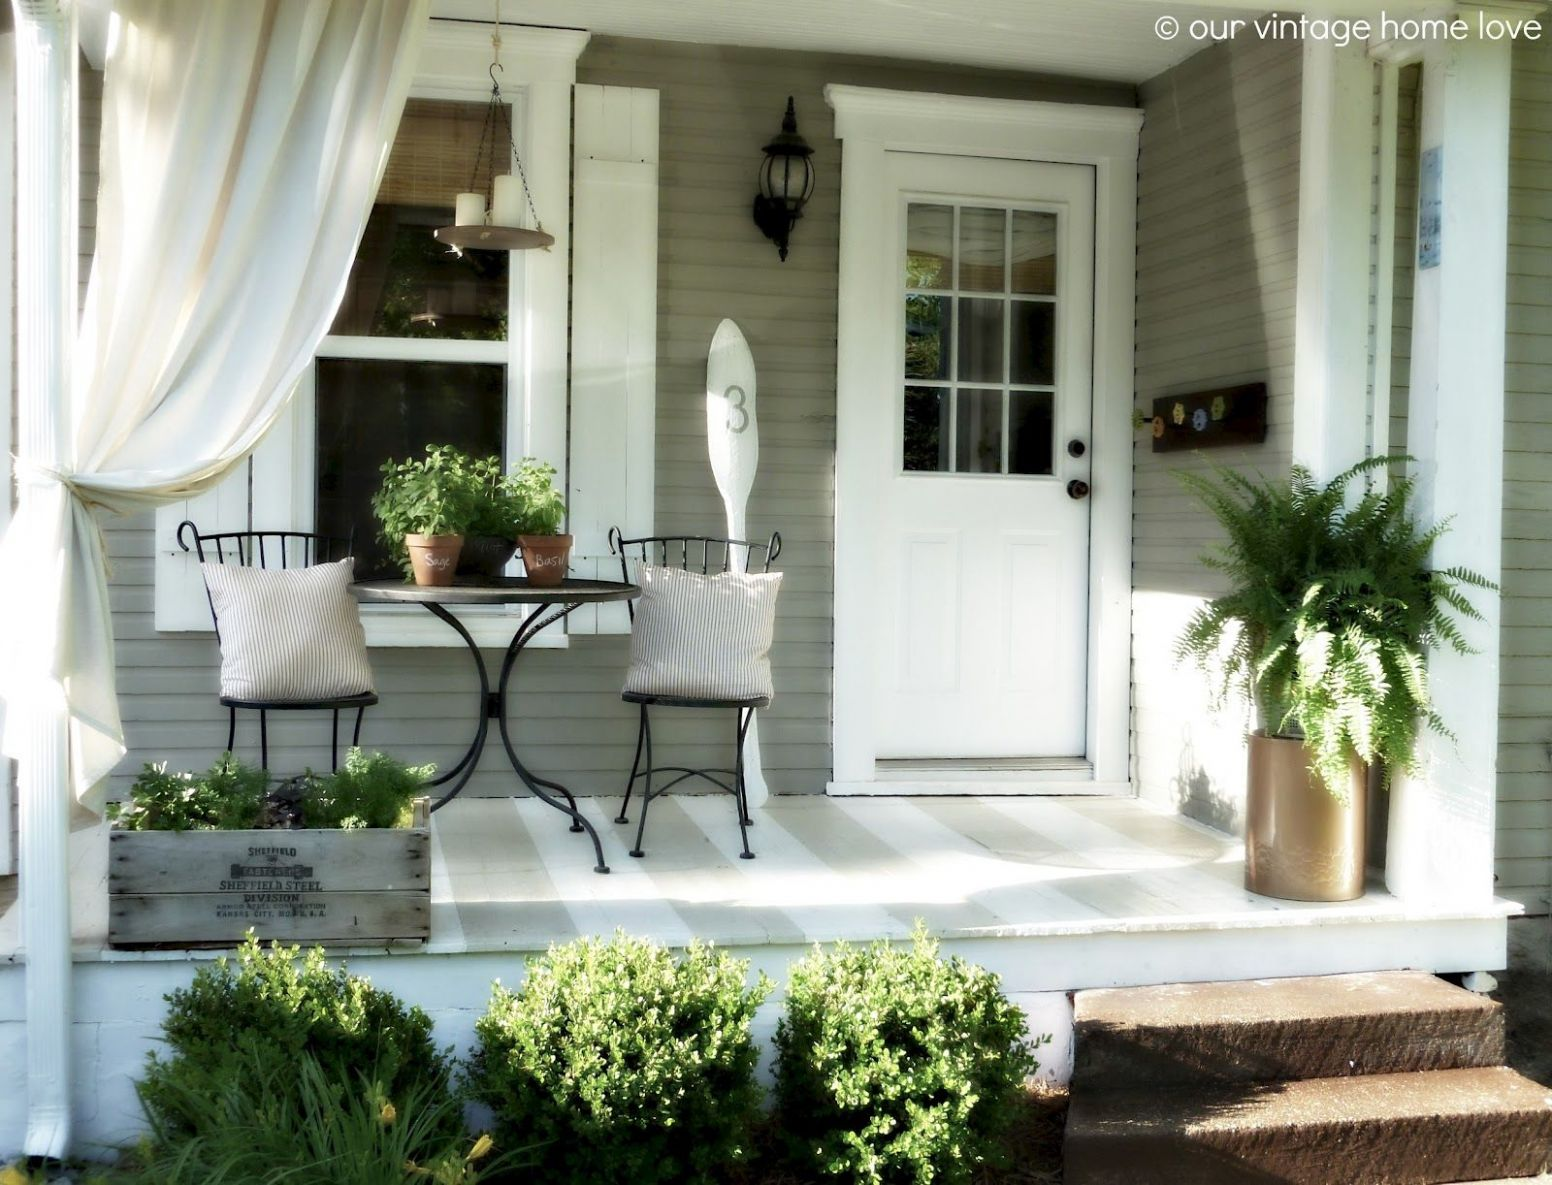 Pin on Front Door/Porch Summer Decor